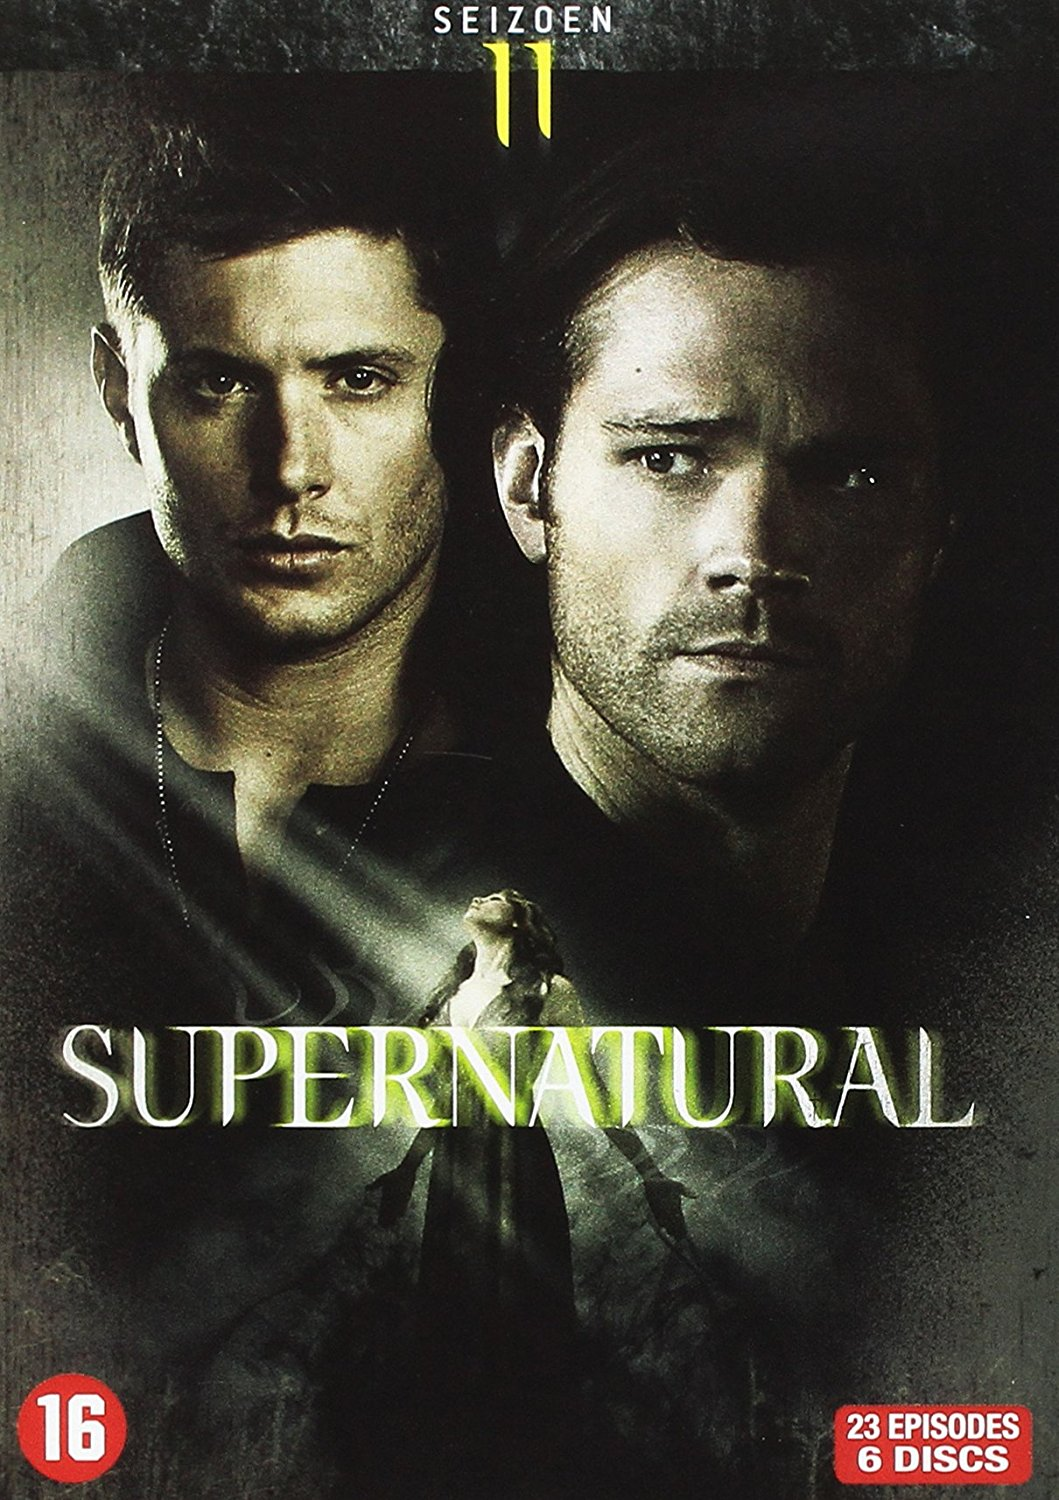 Supernatural - Saison 11, DVD pas cher Amazon